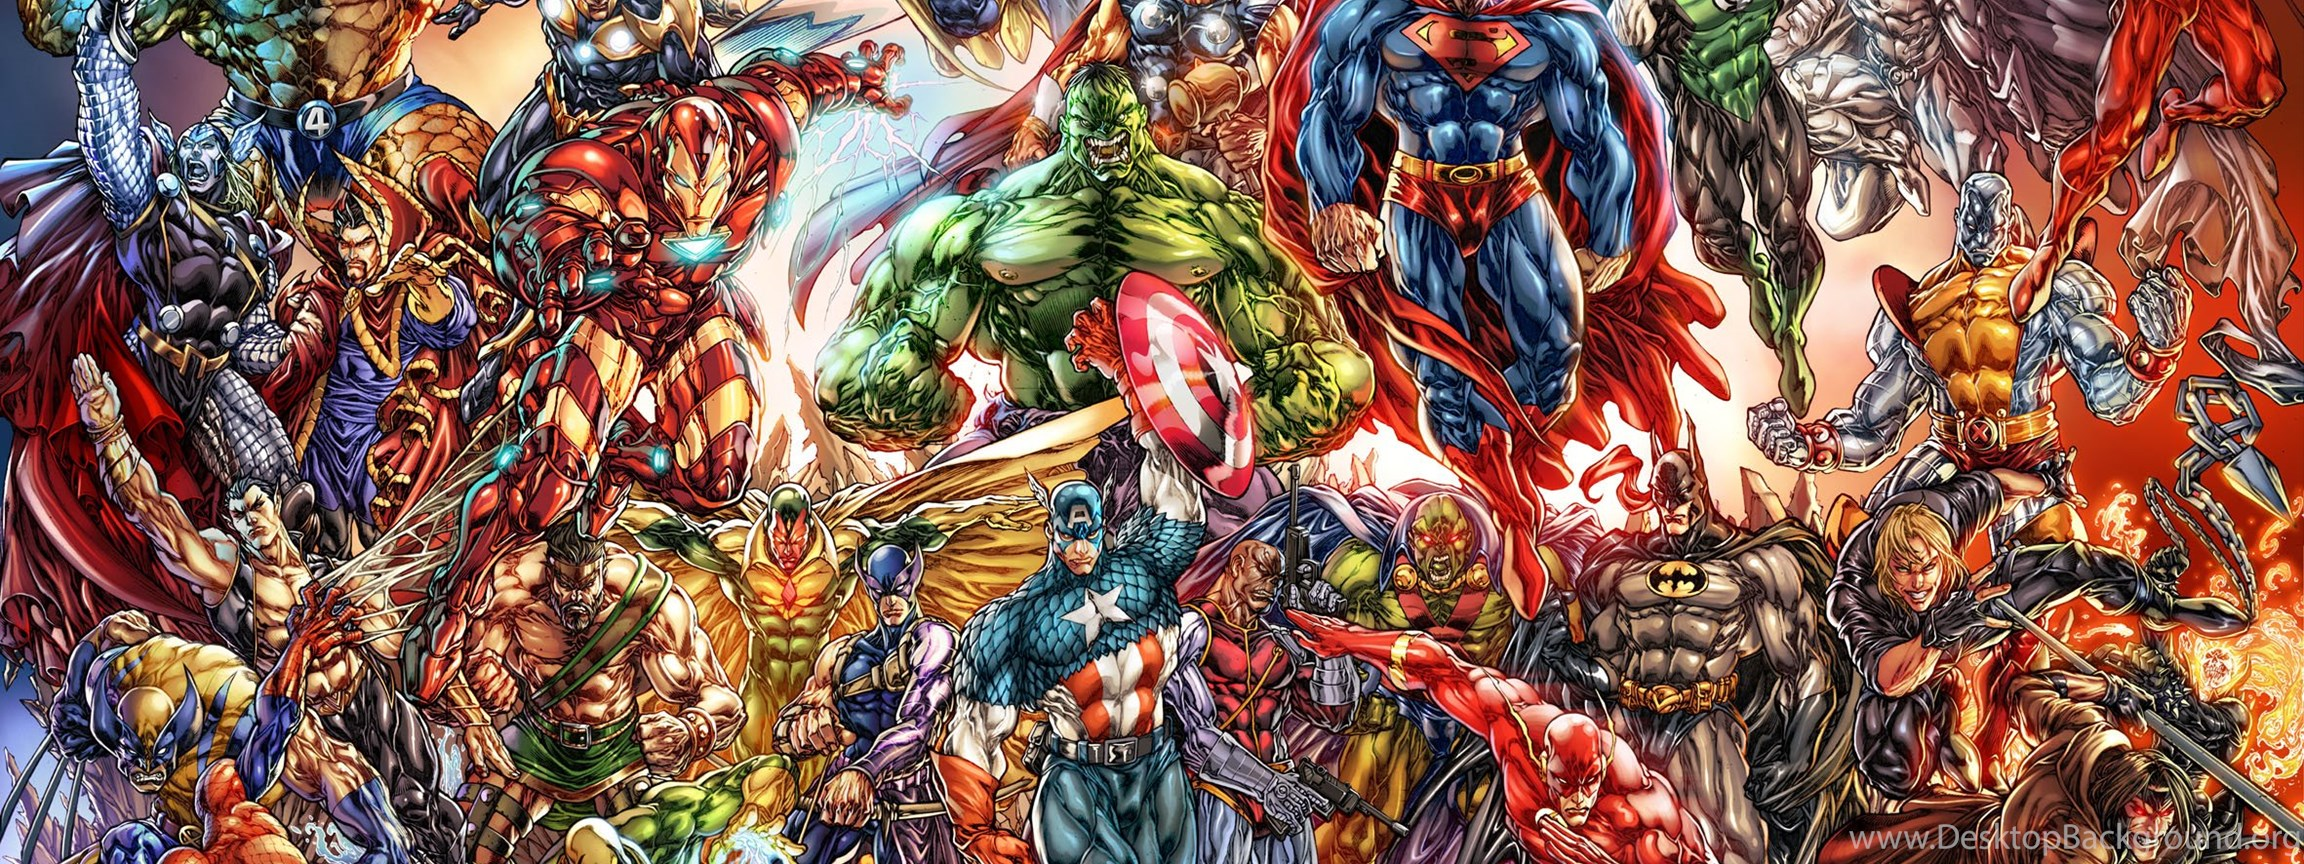 Marvel Wallpaper Characters HD Wallpapers Desktop Background